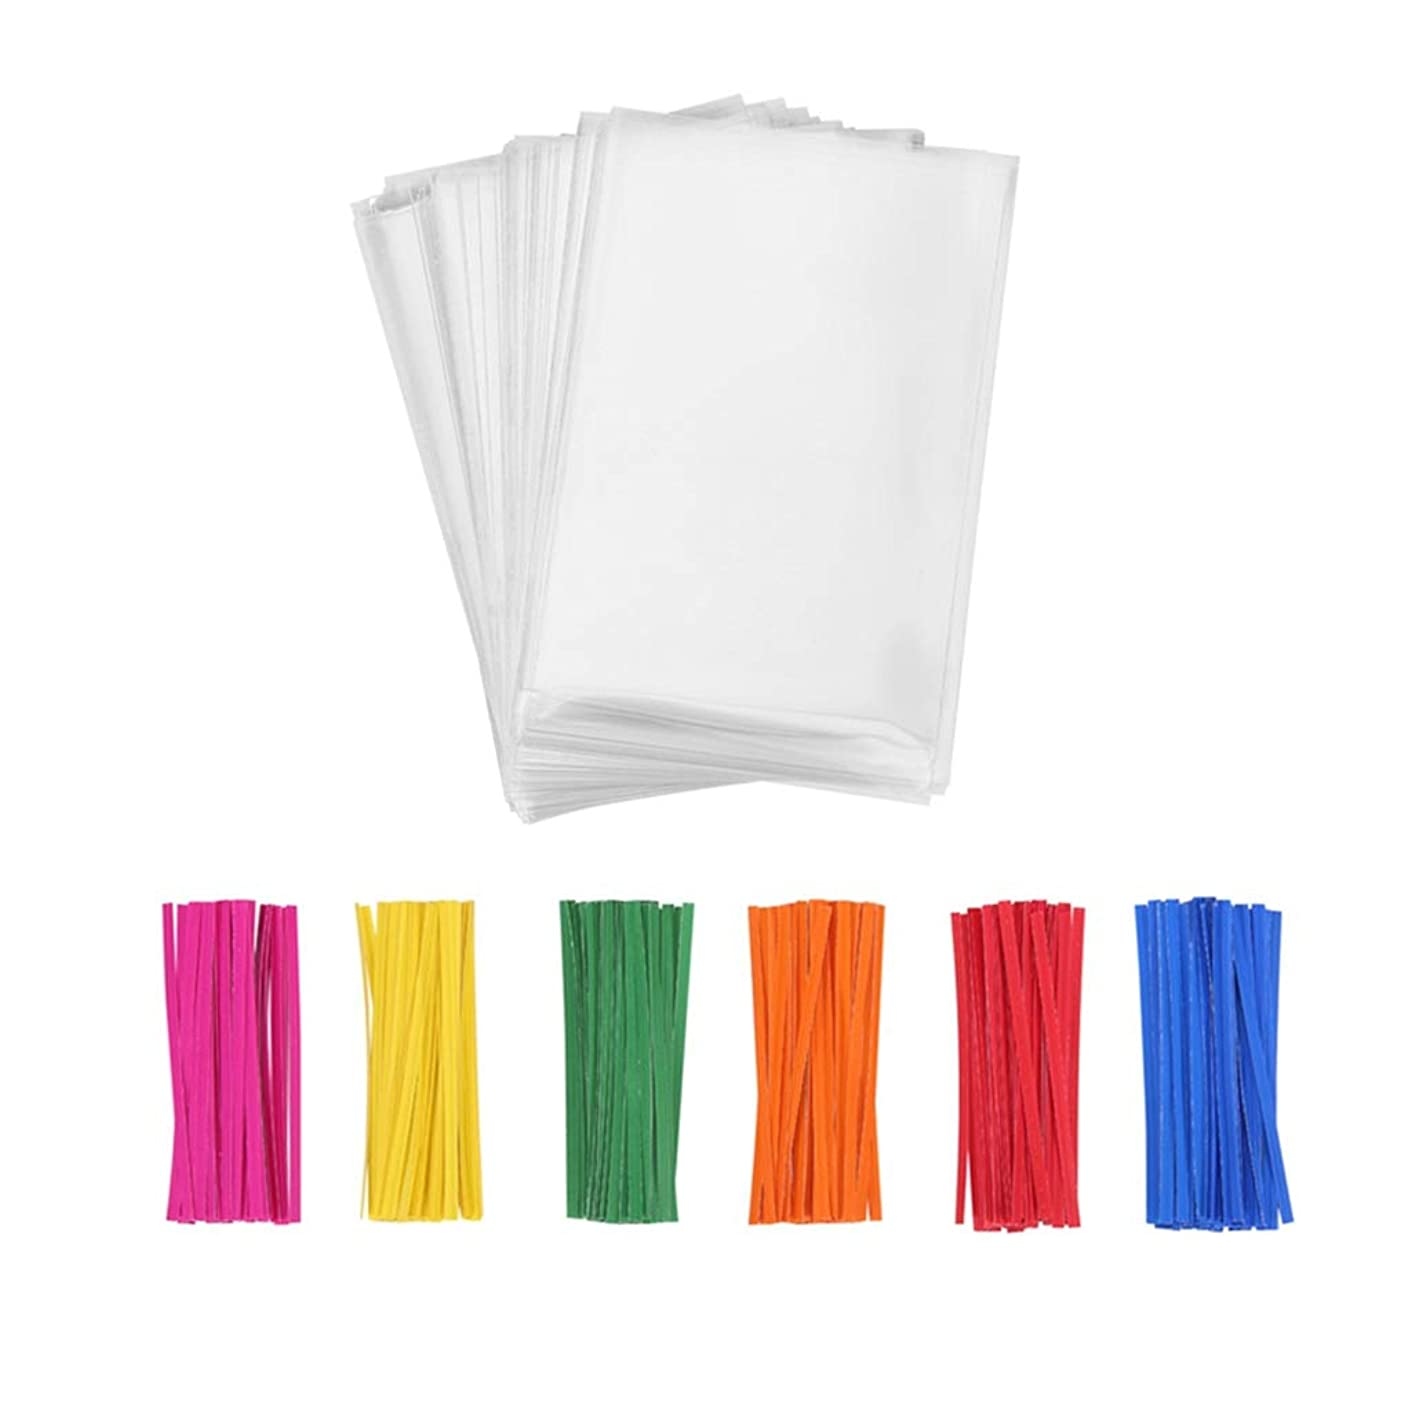 Compostable Clear Plastic Cello Bags 5x7 with Paper Twist Ties for Candy Bakery Cookies Snacks Party Gift Wrapping, Pack of 100 by Quotidian